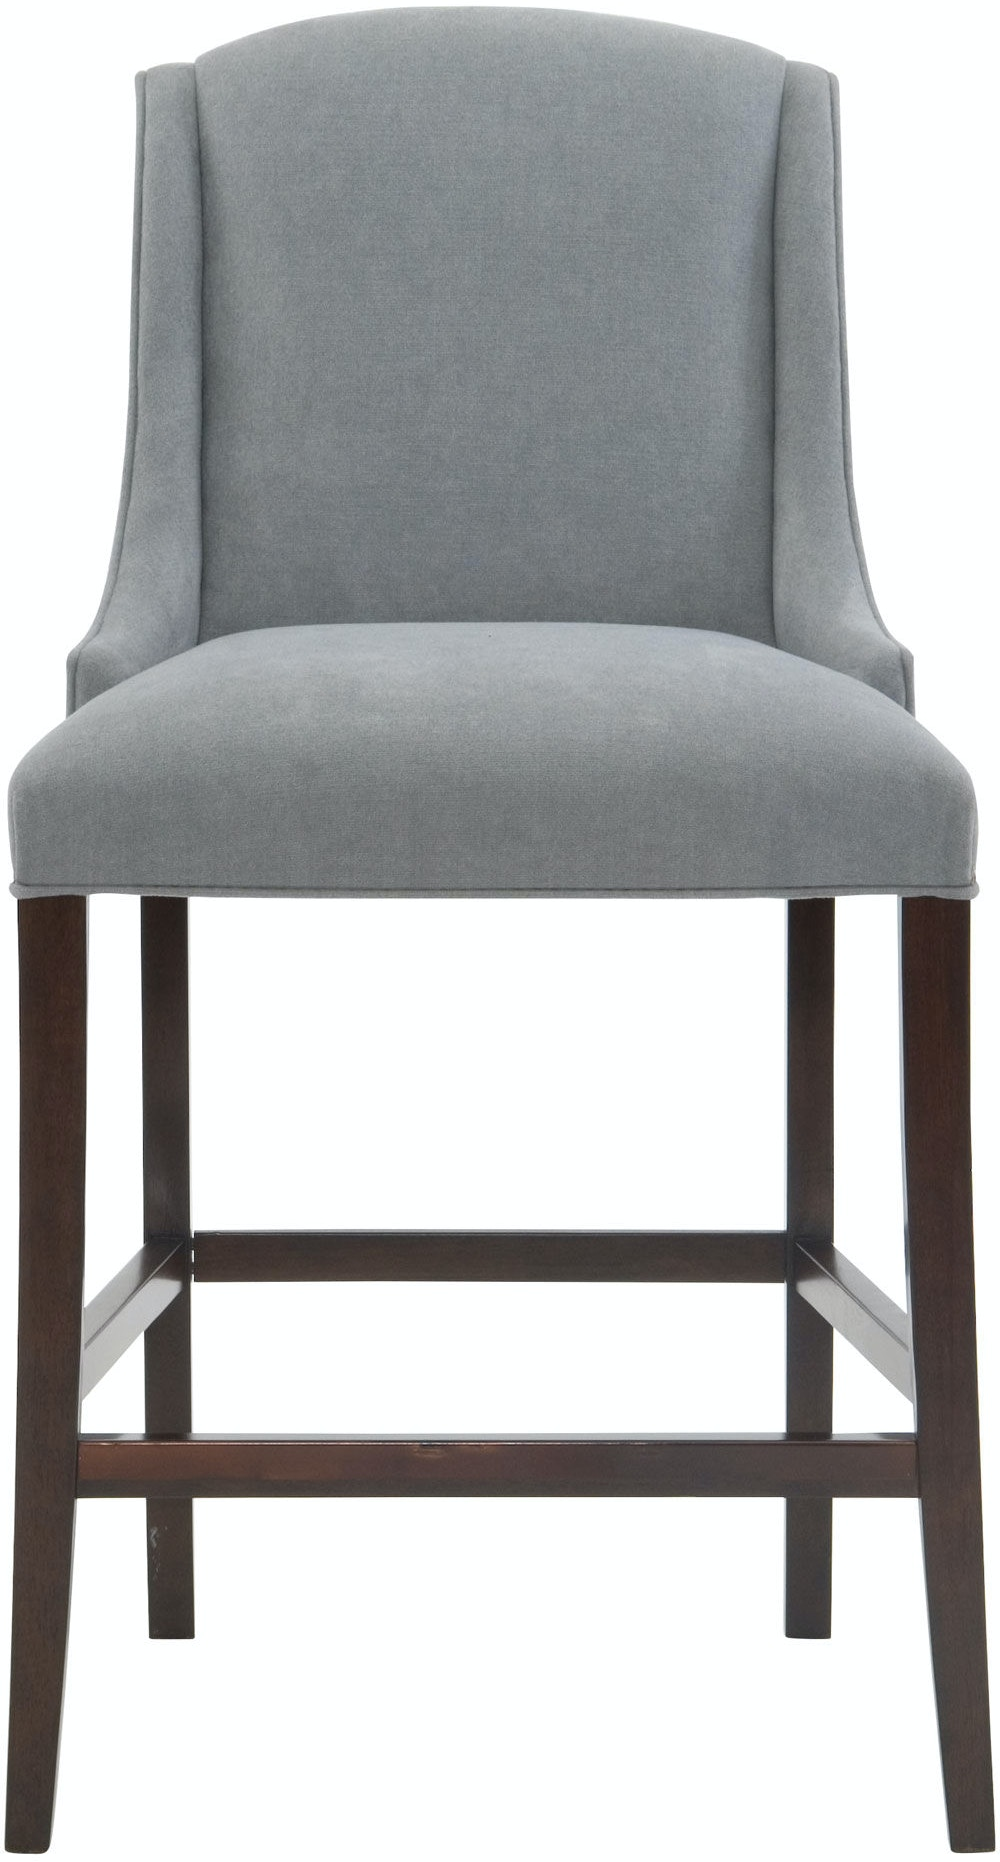 Bernhardt Interiors Bar and Game Room Bar Stool 319 586  : 319 586 1 from www.lenoirempirefurniture.com size 1024 x 768 jpeg 29kB